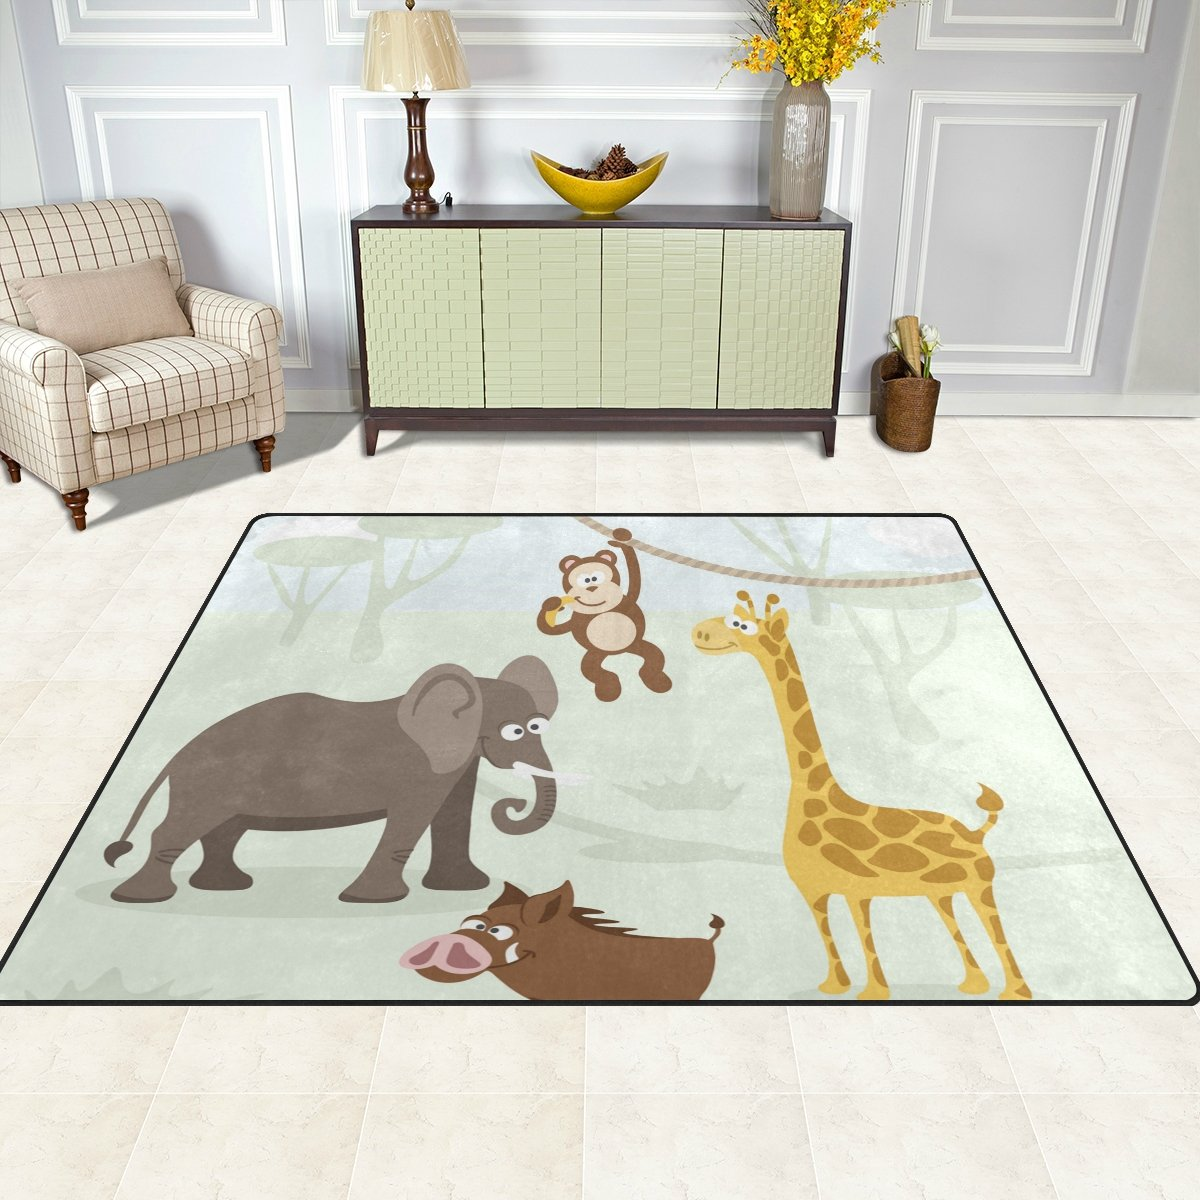 Vantaso Soft Foam Area Rugs Forest Animals Elephant Monkey Non Slip Play Mats for Kids Boys Girls Playing Room Living Room 80x58 inch by Vantaso (Image #3)